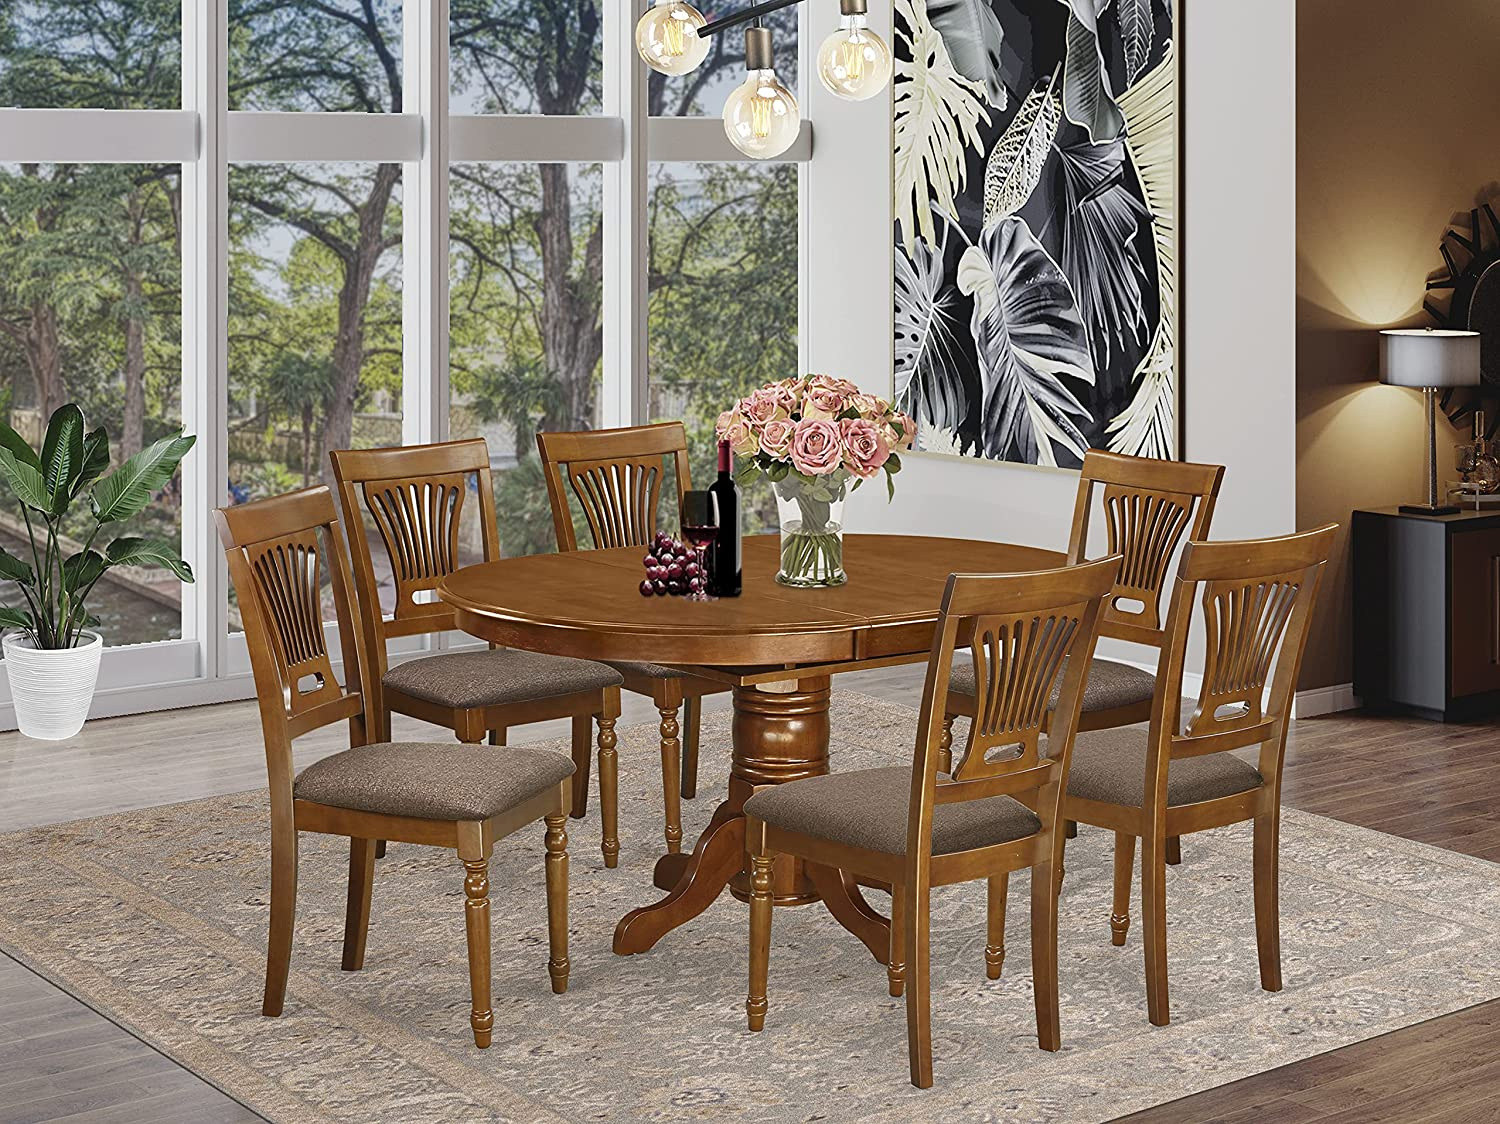 East West Furniture AVPL7-SBR-C Sales Dining Seat Linen Attention brand Set Fabric